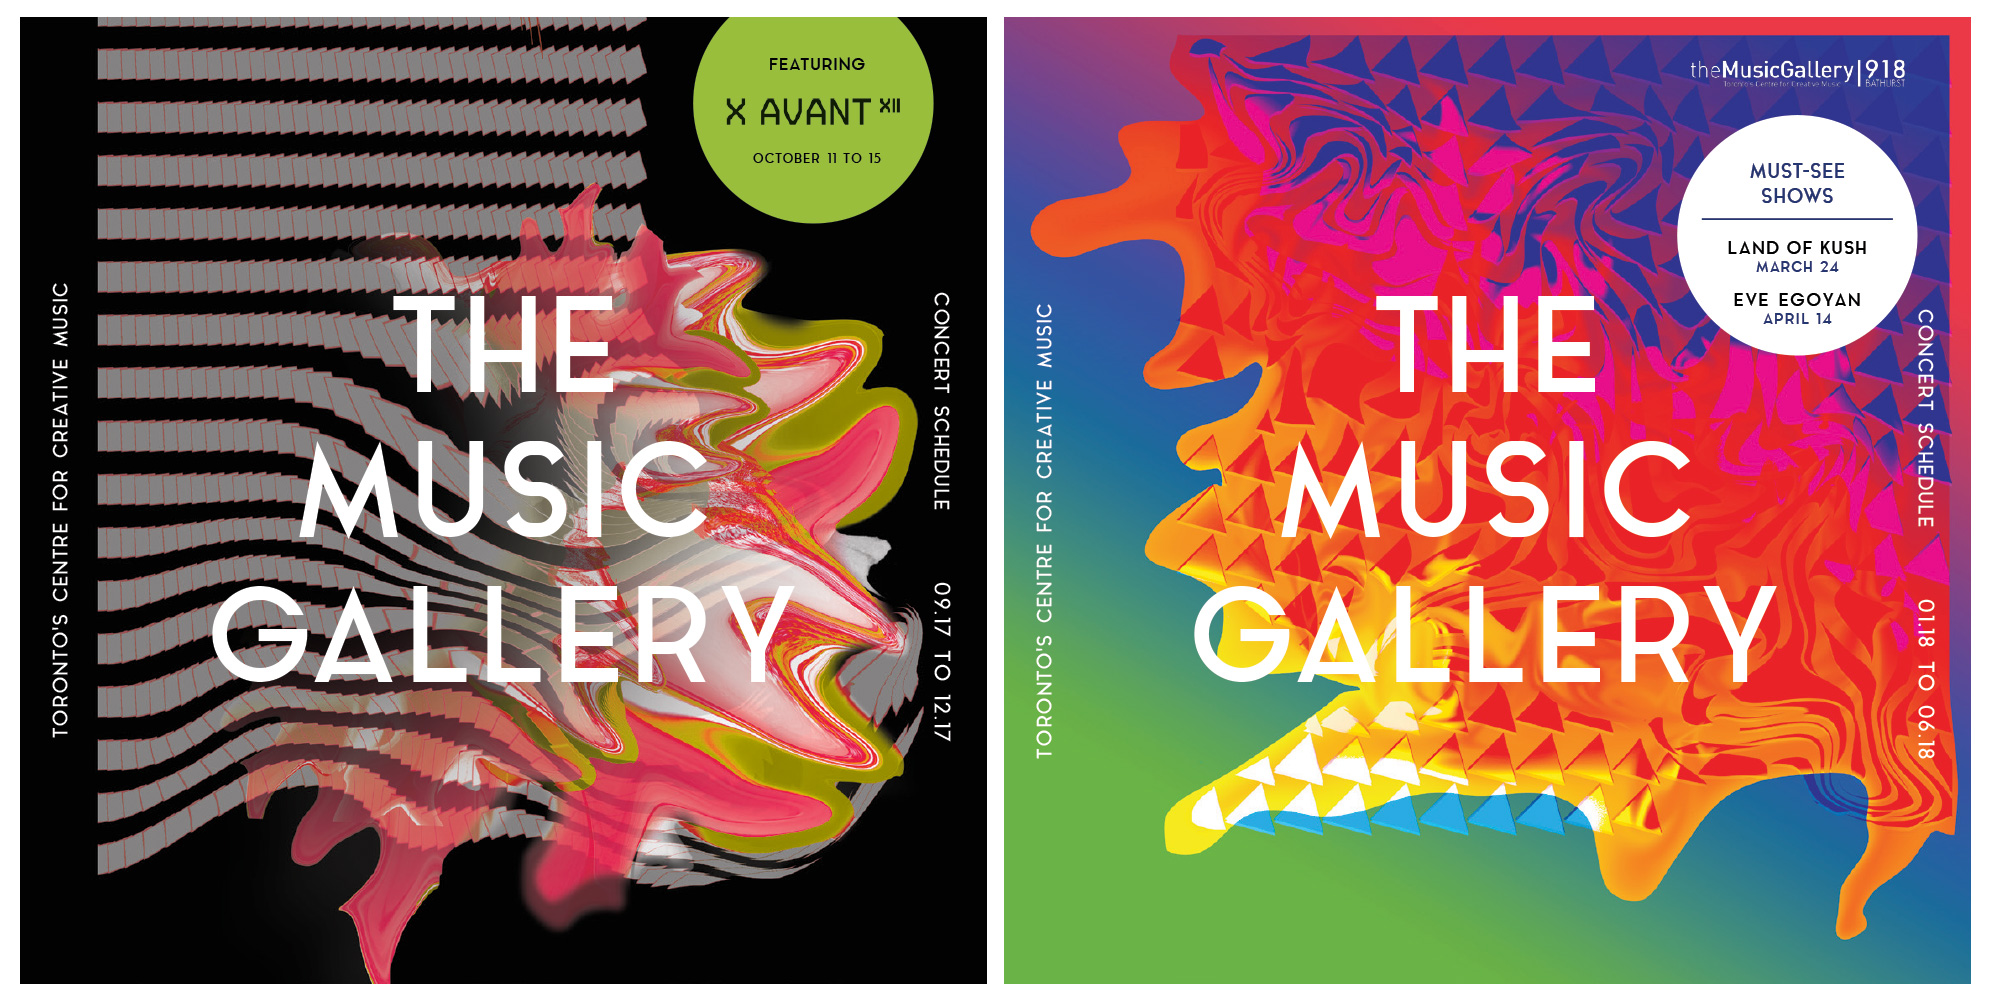 Image of the Fall and Winter guide covers for The Music Gallery's 2017-2018 season. The Fall guide cover (left) consists of a grey geometric pattern bursting out into a colorful formation of rounded peaks from the center of the image to the bottom left of the canvas. The Winter guide cover (right) shows of a series of triangular sequences melting into a lava-looking substance. This substance moves from the top right corner towards the bottom left of the page through a blue and green gradient background.